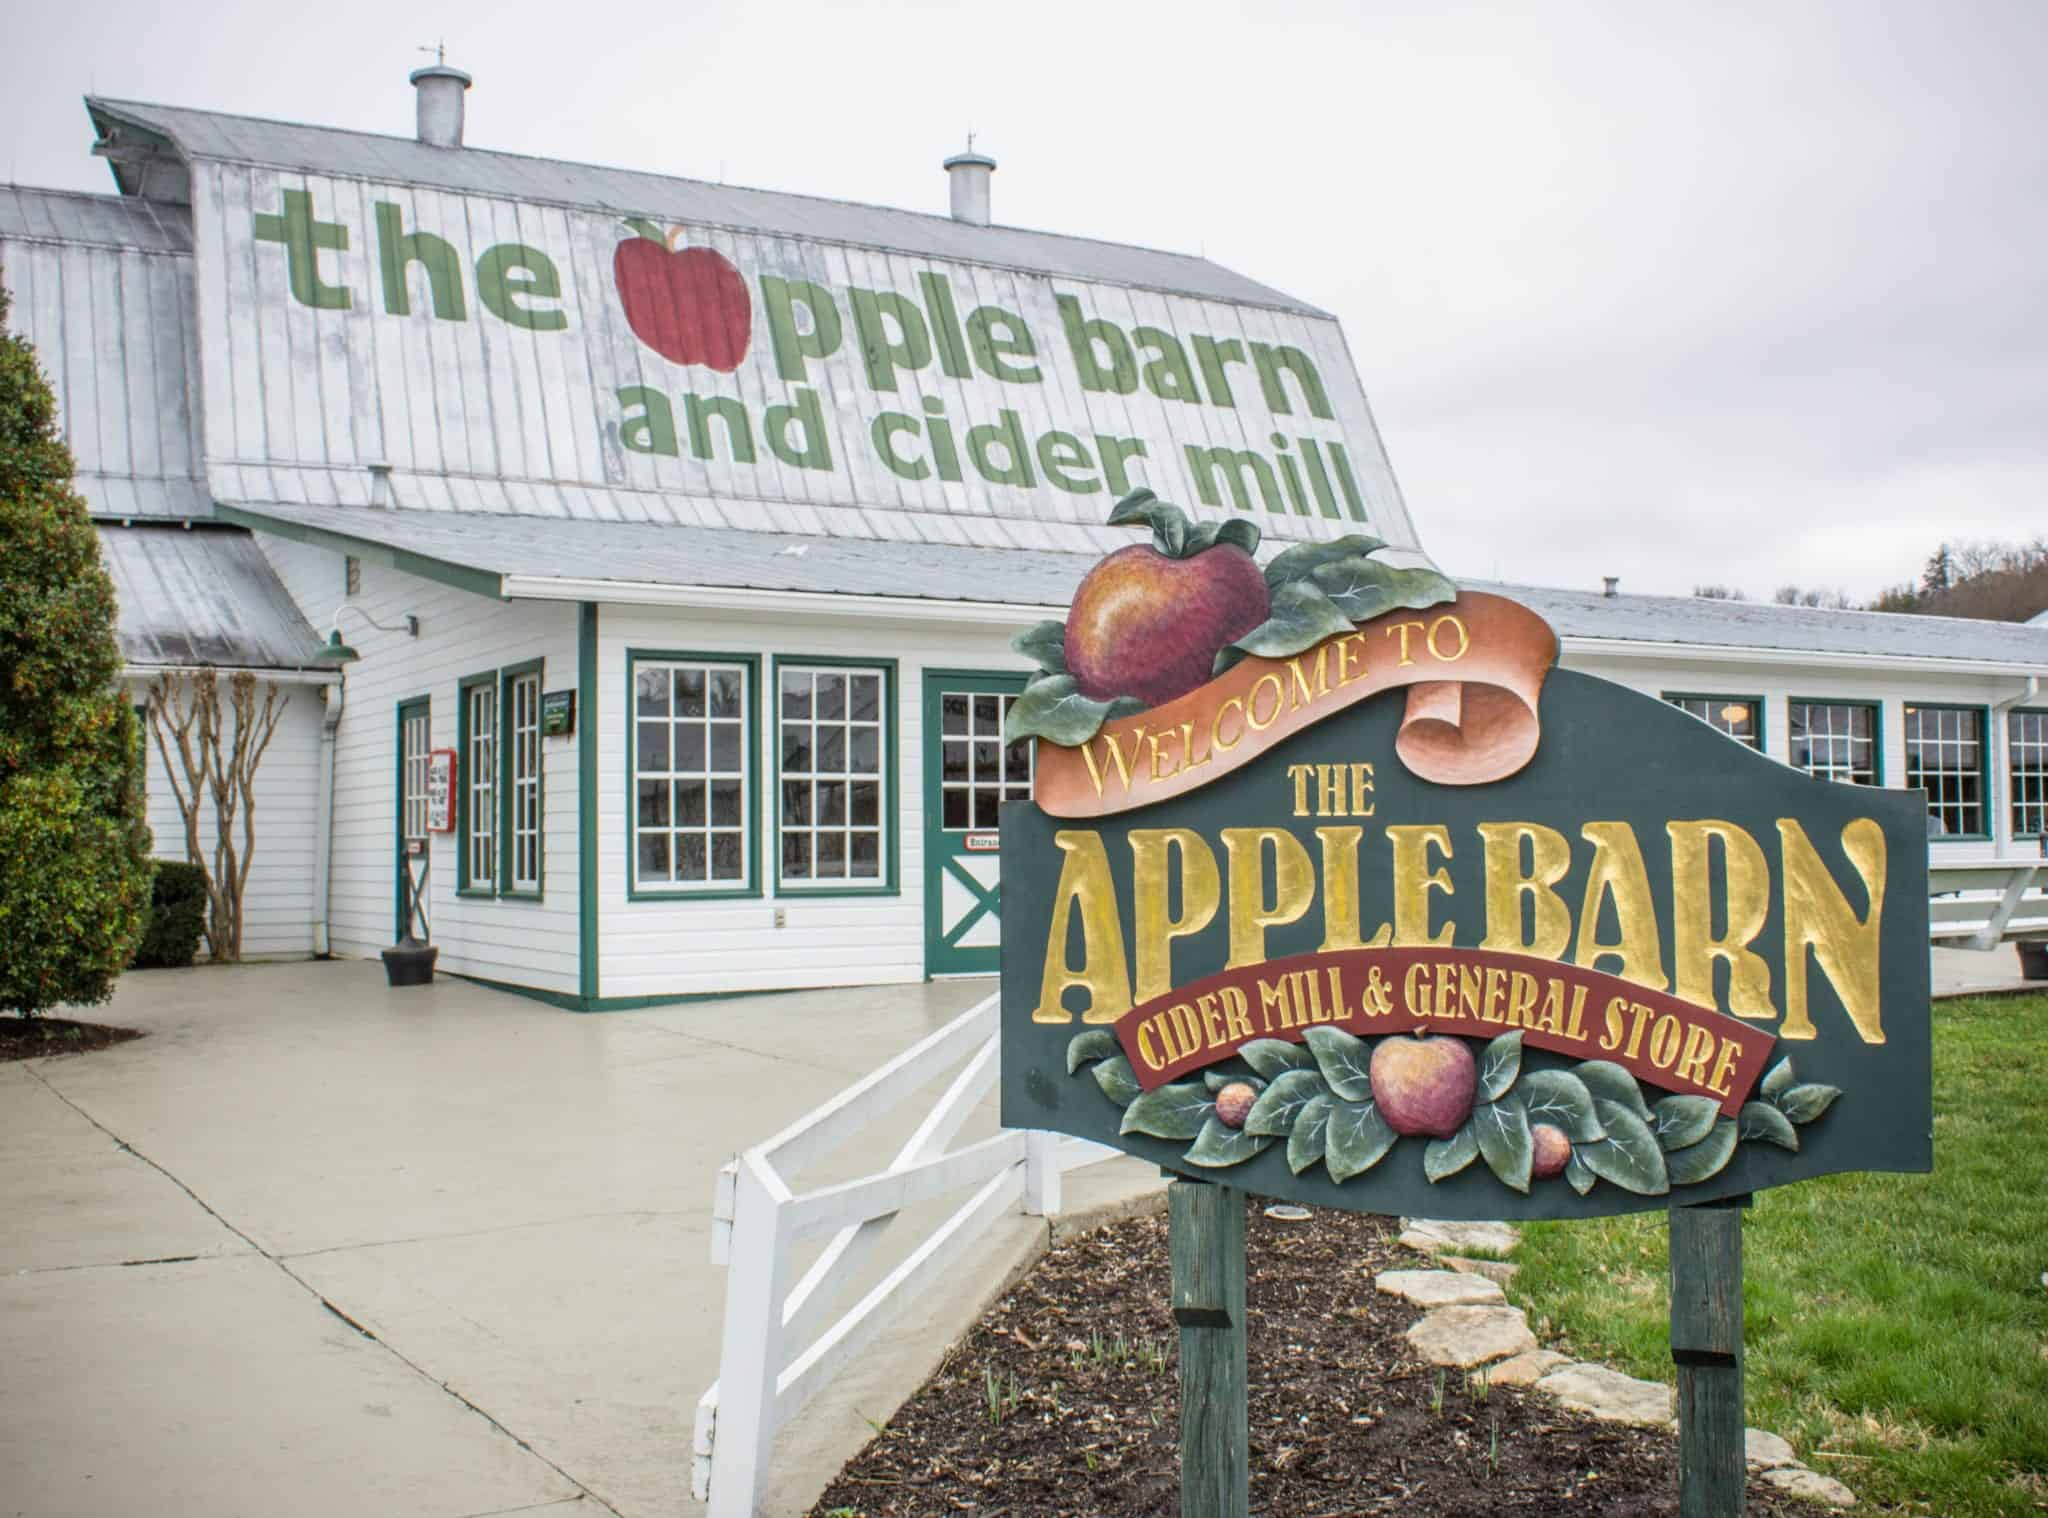 exterior of the apple barn and cider mill with a sign